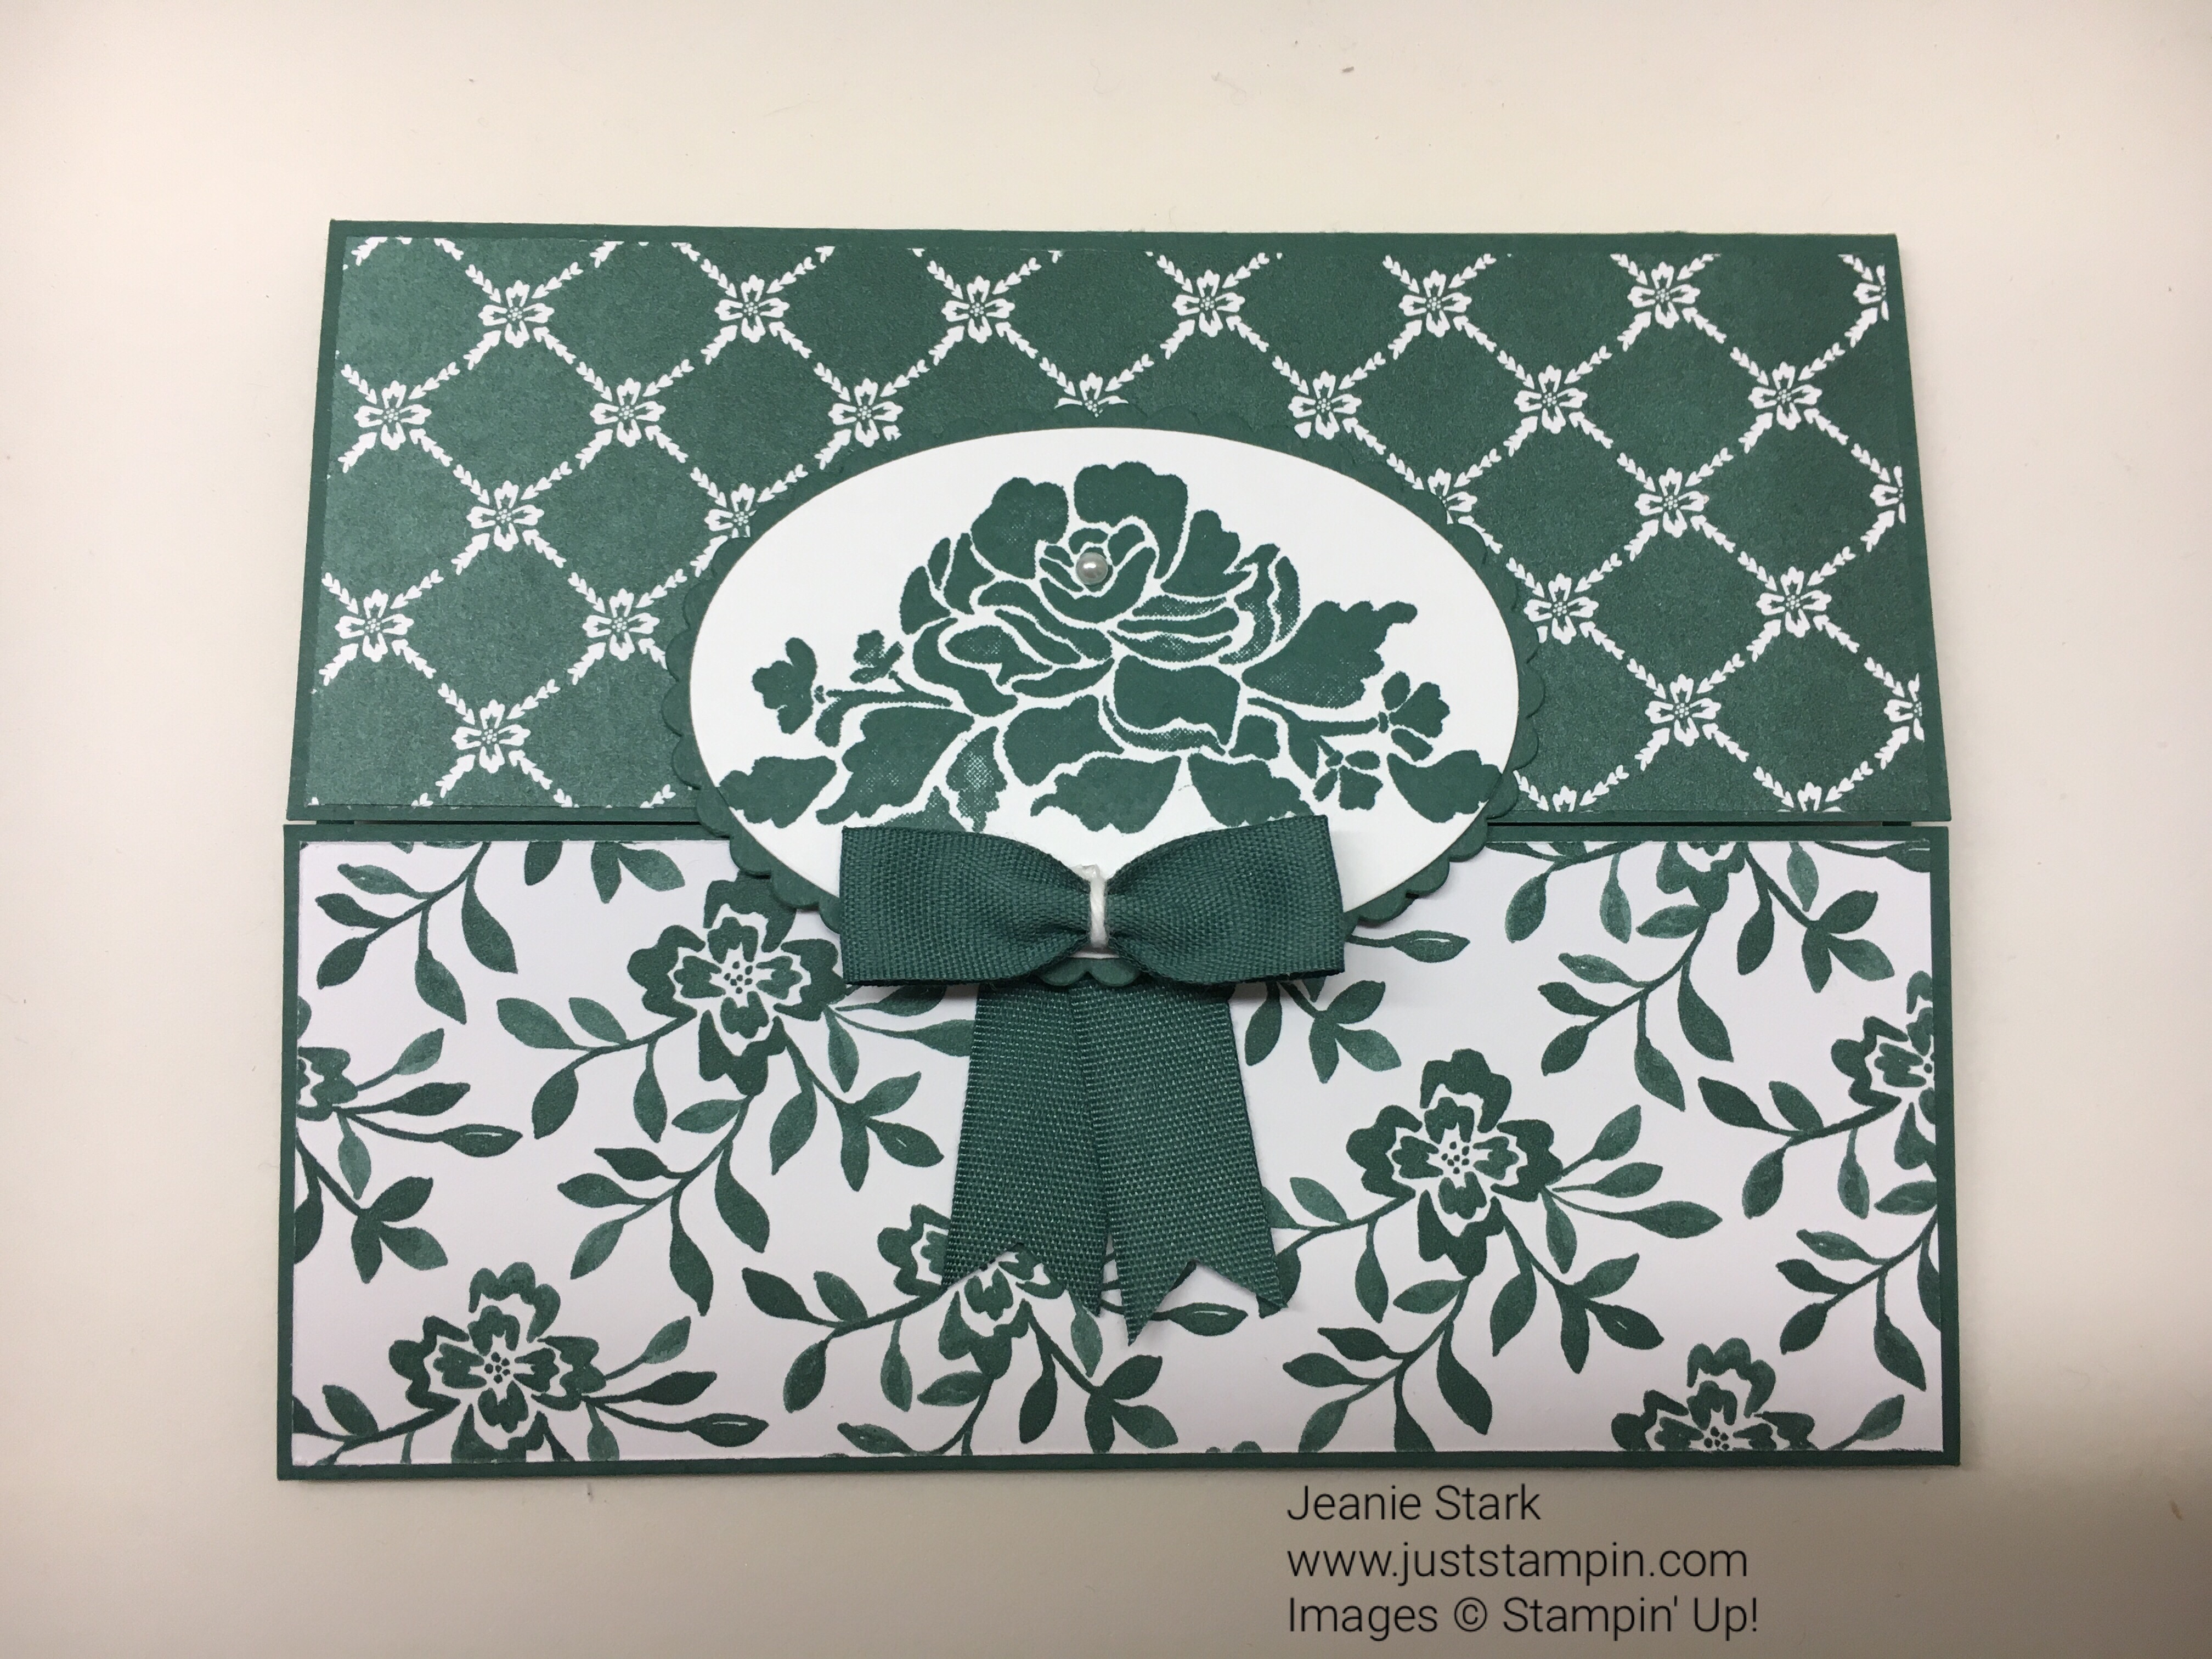 Stampin Up Floral Phrases Gate Fold thank you card idea - Jeanie Stark StampinUp